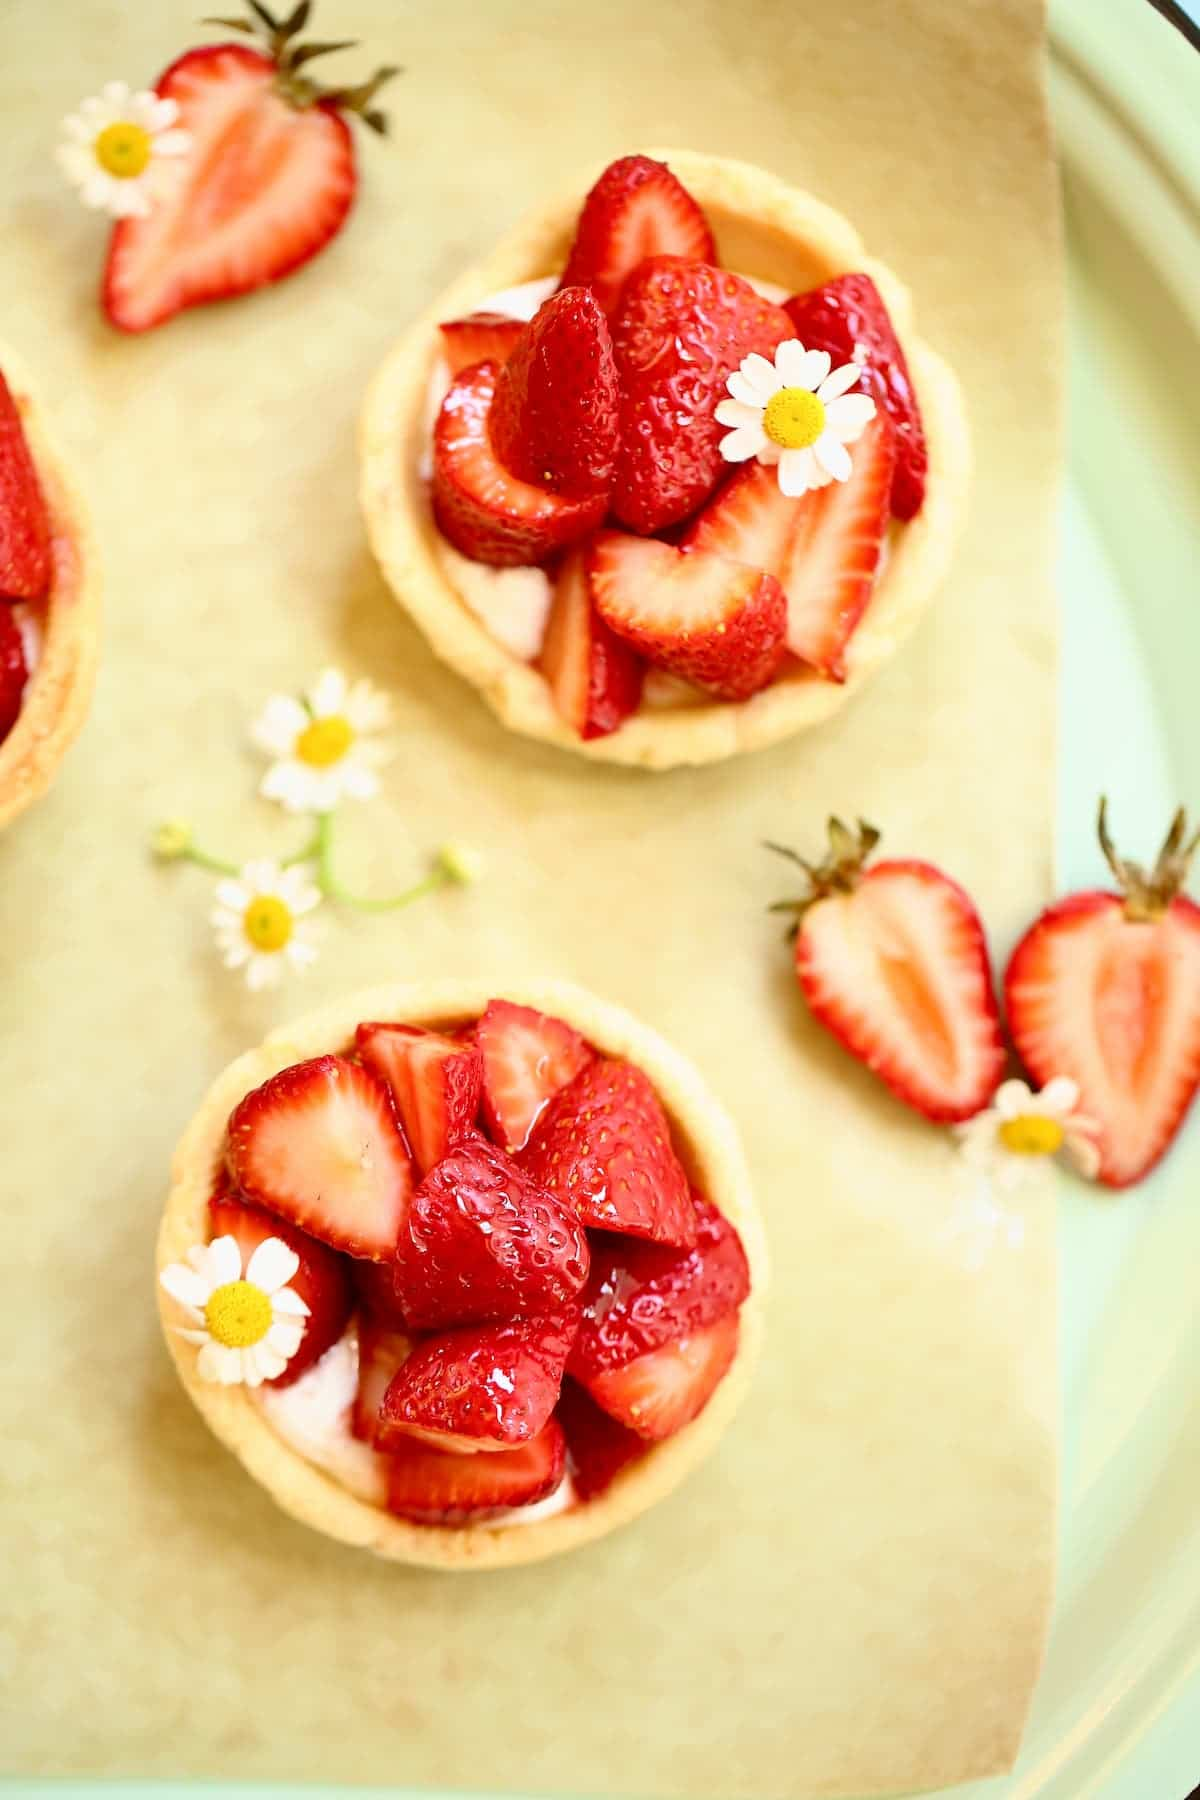 three small strawberry pies with small flowers on a serving tray.